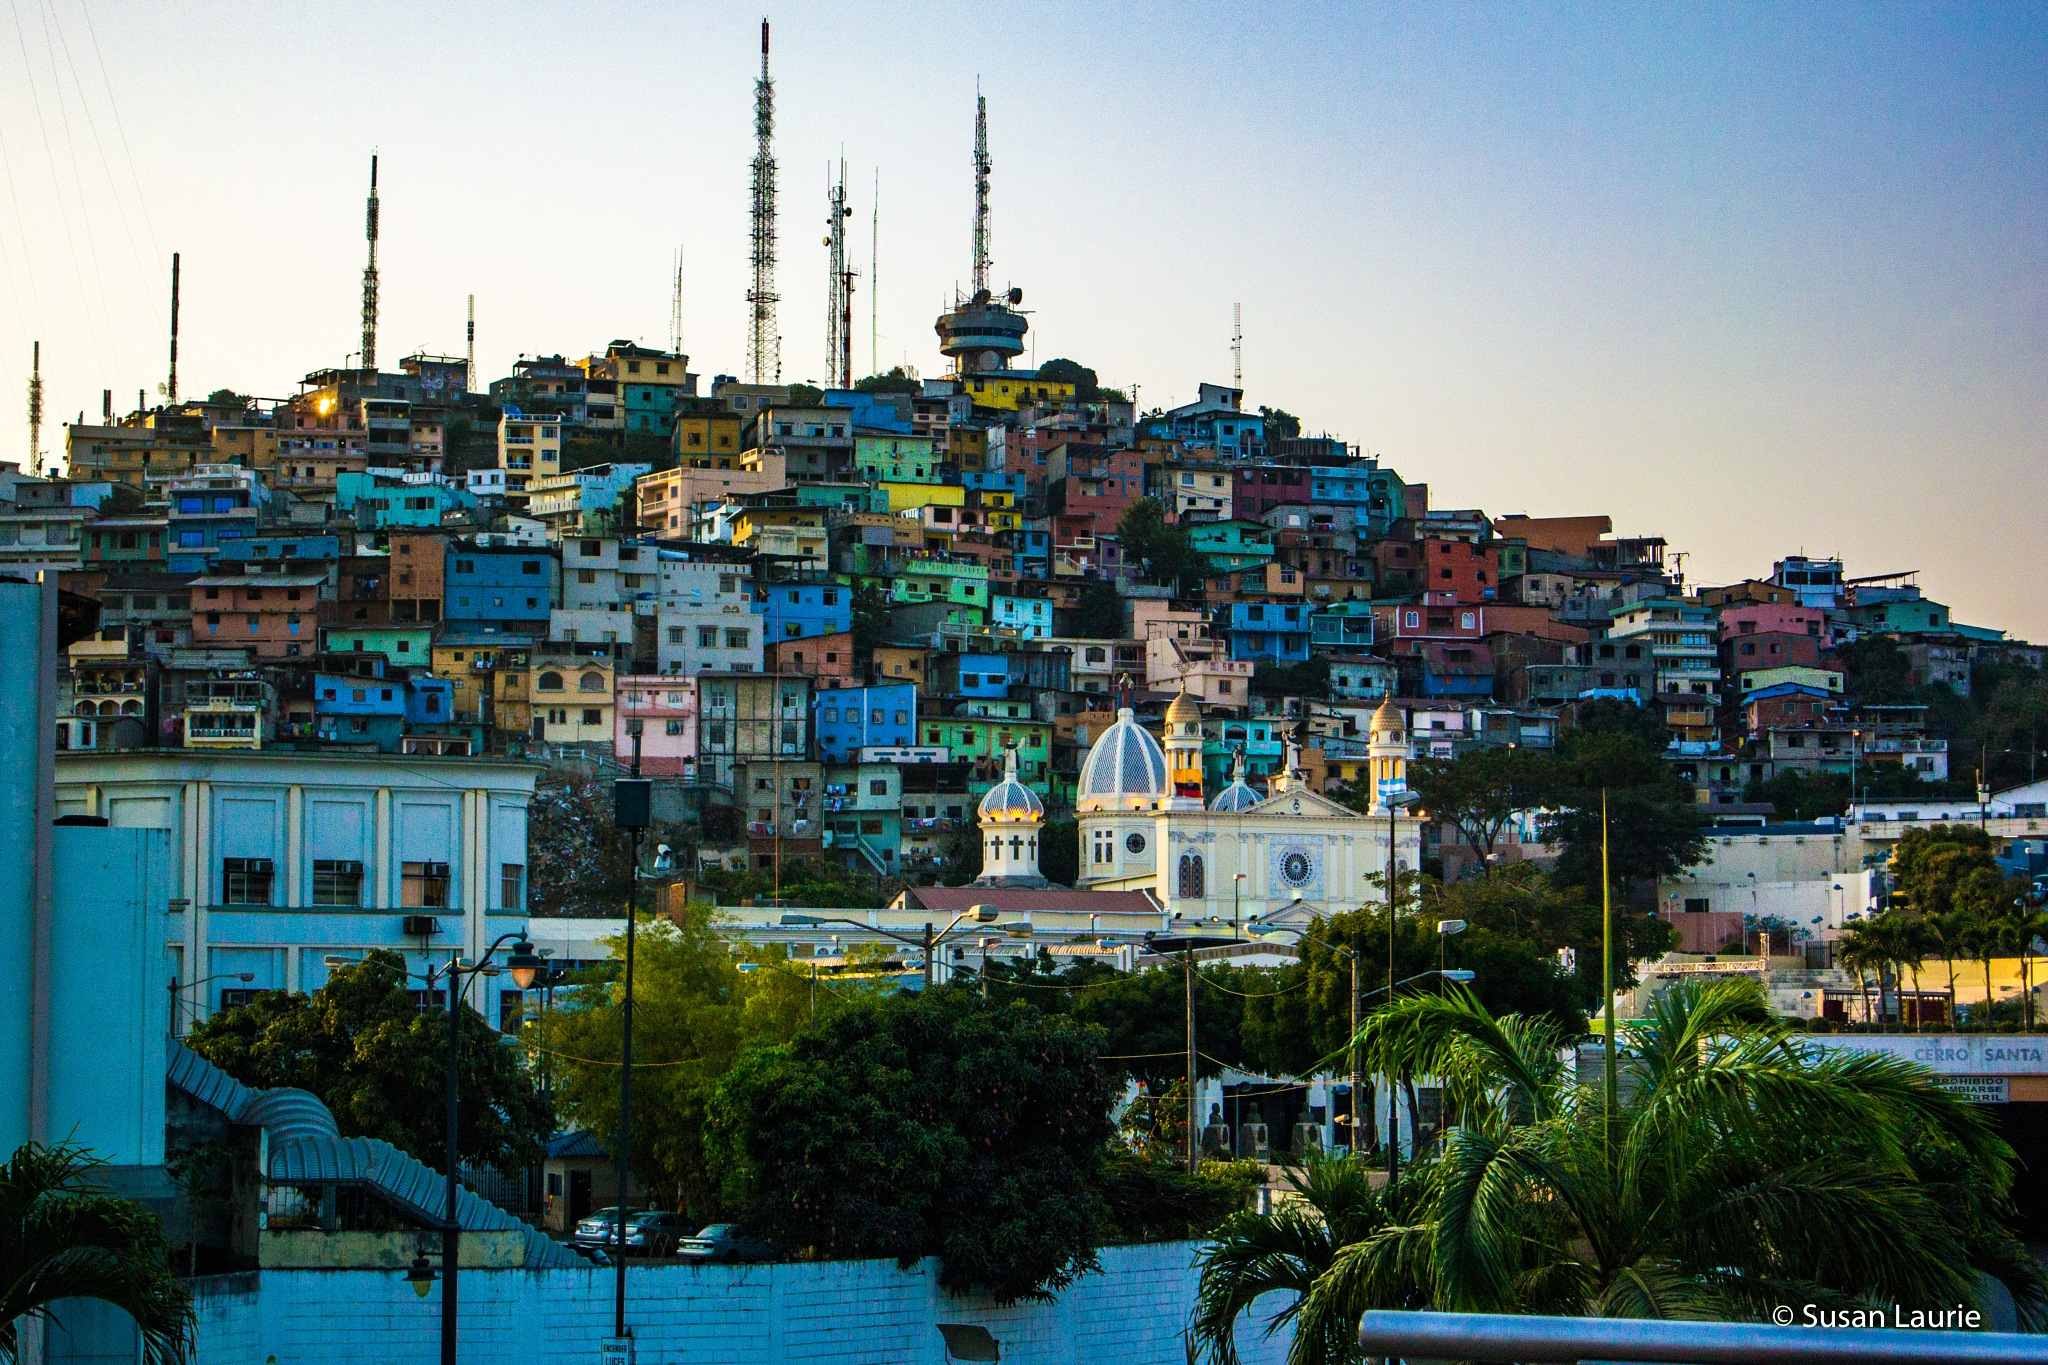 Ground View of City In The Mountain by Susan Laurie